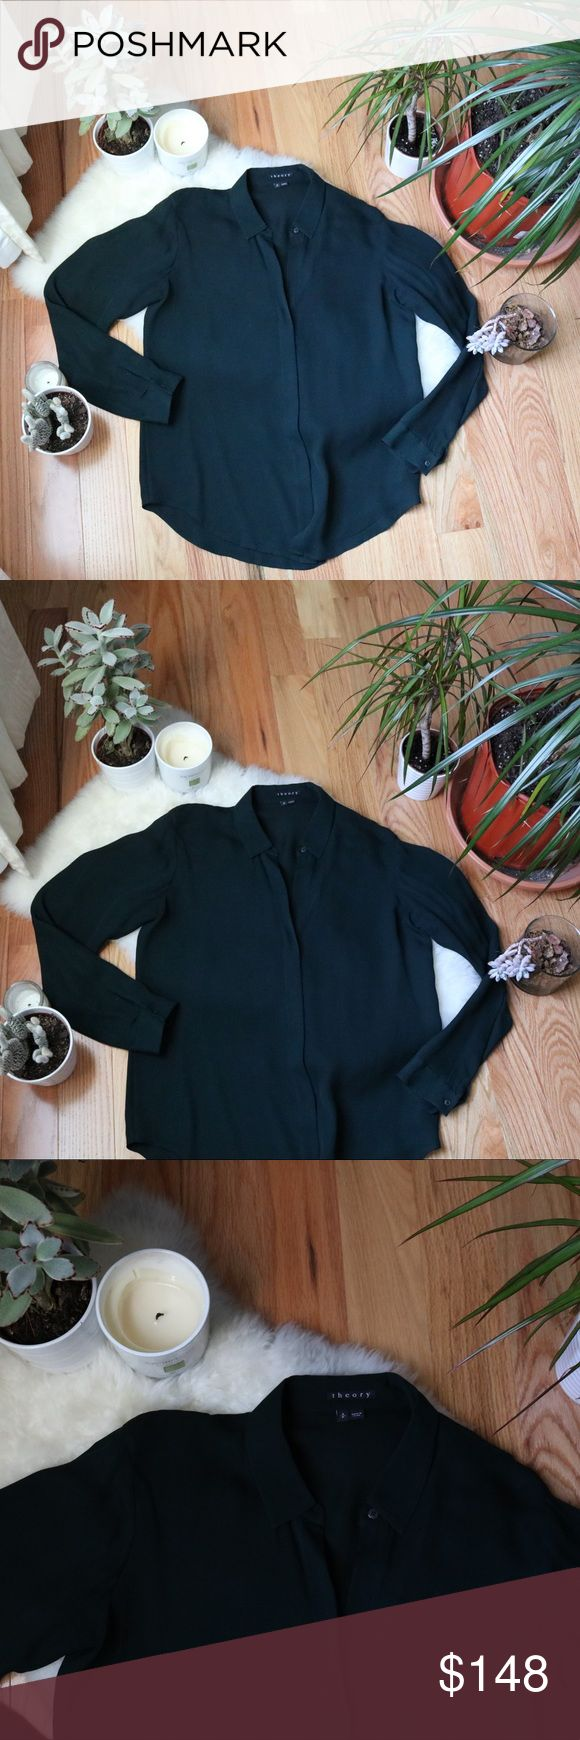 Theory Forest Green Silk Blouse 🌹 Insanely gorgeous and classy 100% silk blouse from Theory!! Features a hidden button down placket. 🌹 I style this with leather leggings and suede knee high boots. ❤️ there is a tiny stain on the sleeve as seen in the photos, price reflects this flaw :) Theory Tops Blouses